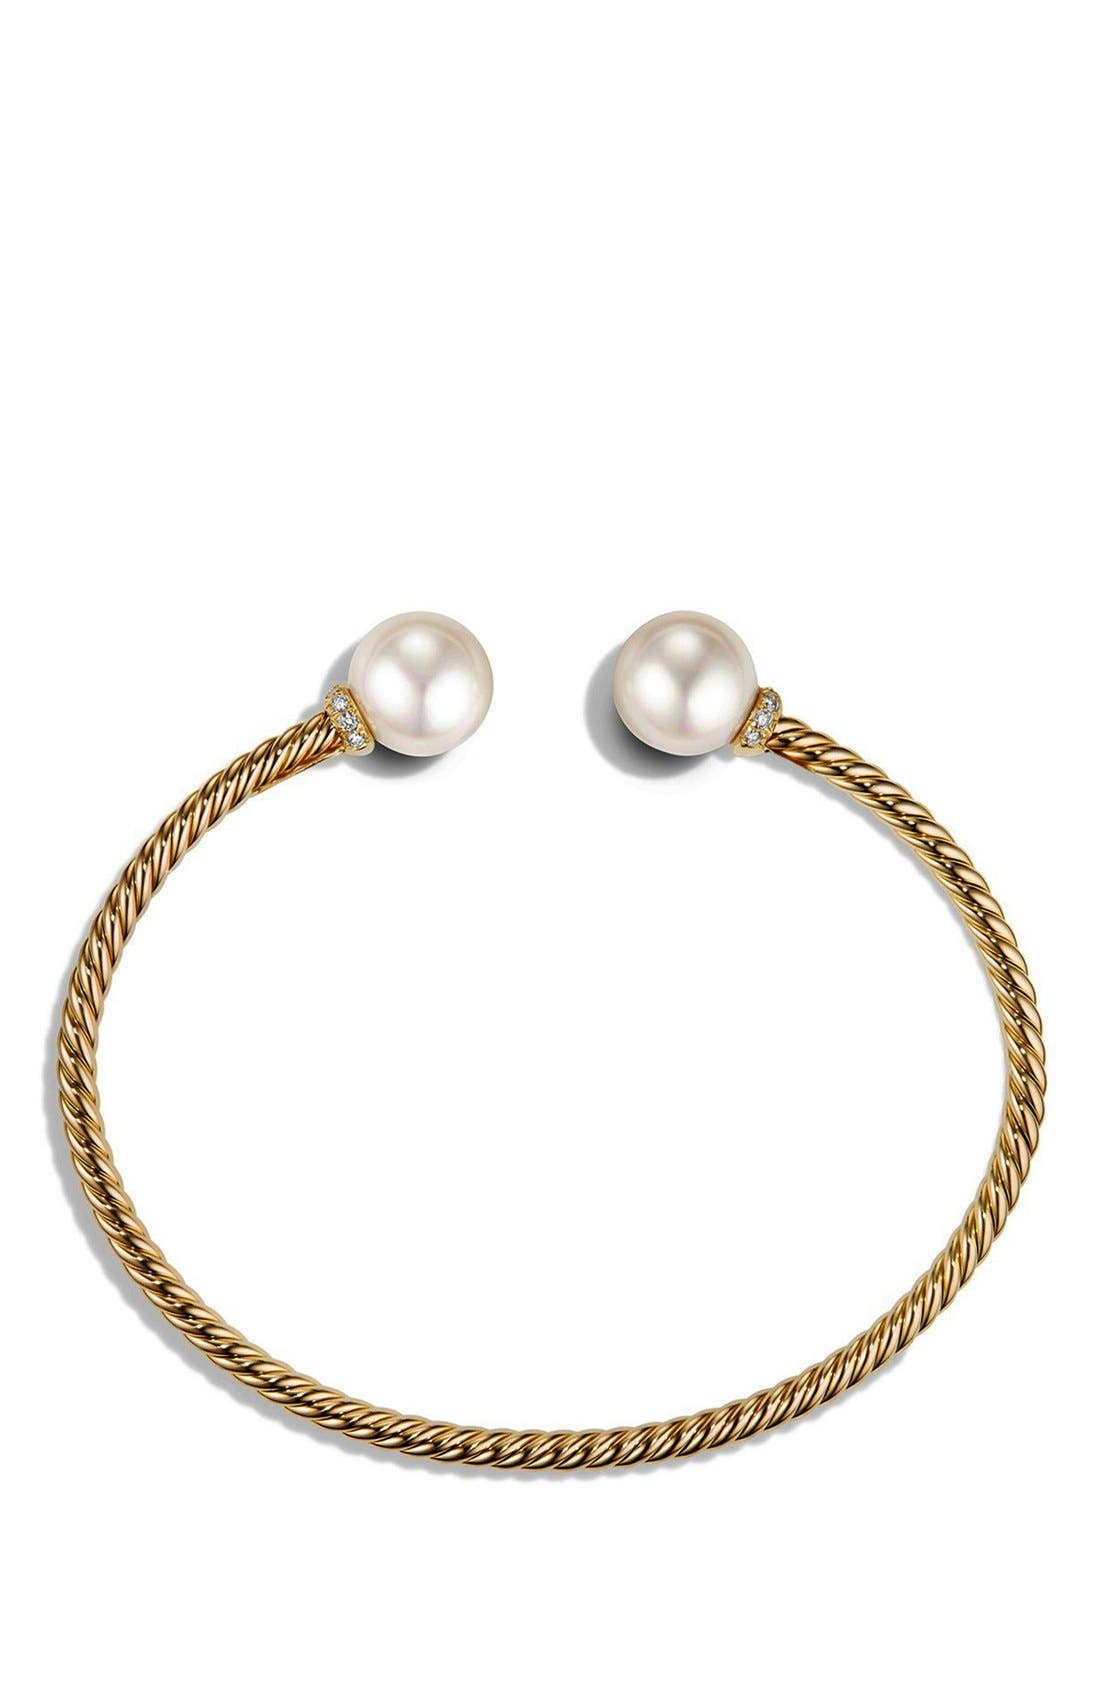 'Solari' Bead Bracelet with Diamonds and Pearls in 18K Gold,                             Alternate thumbnail 3, color,                             PEARL